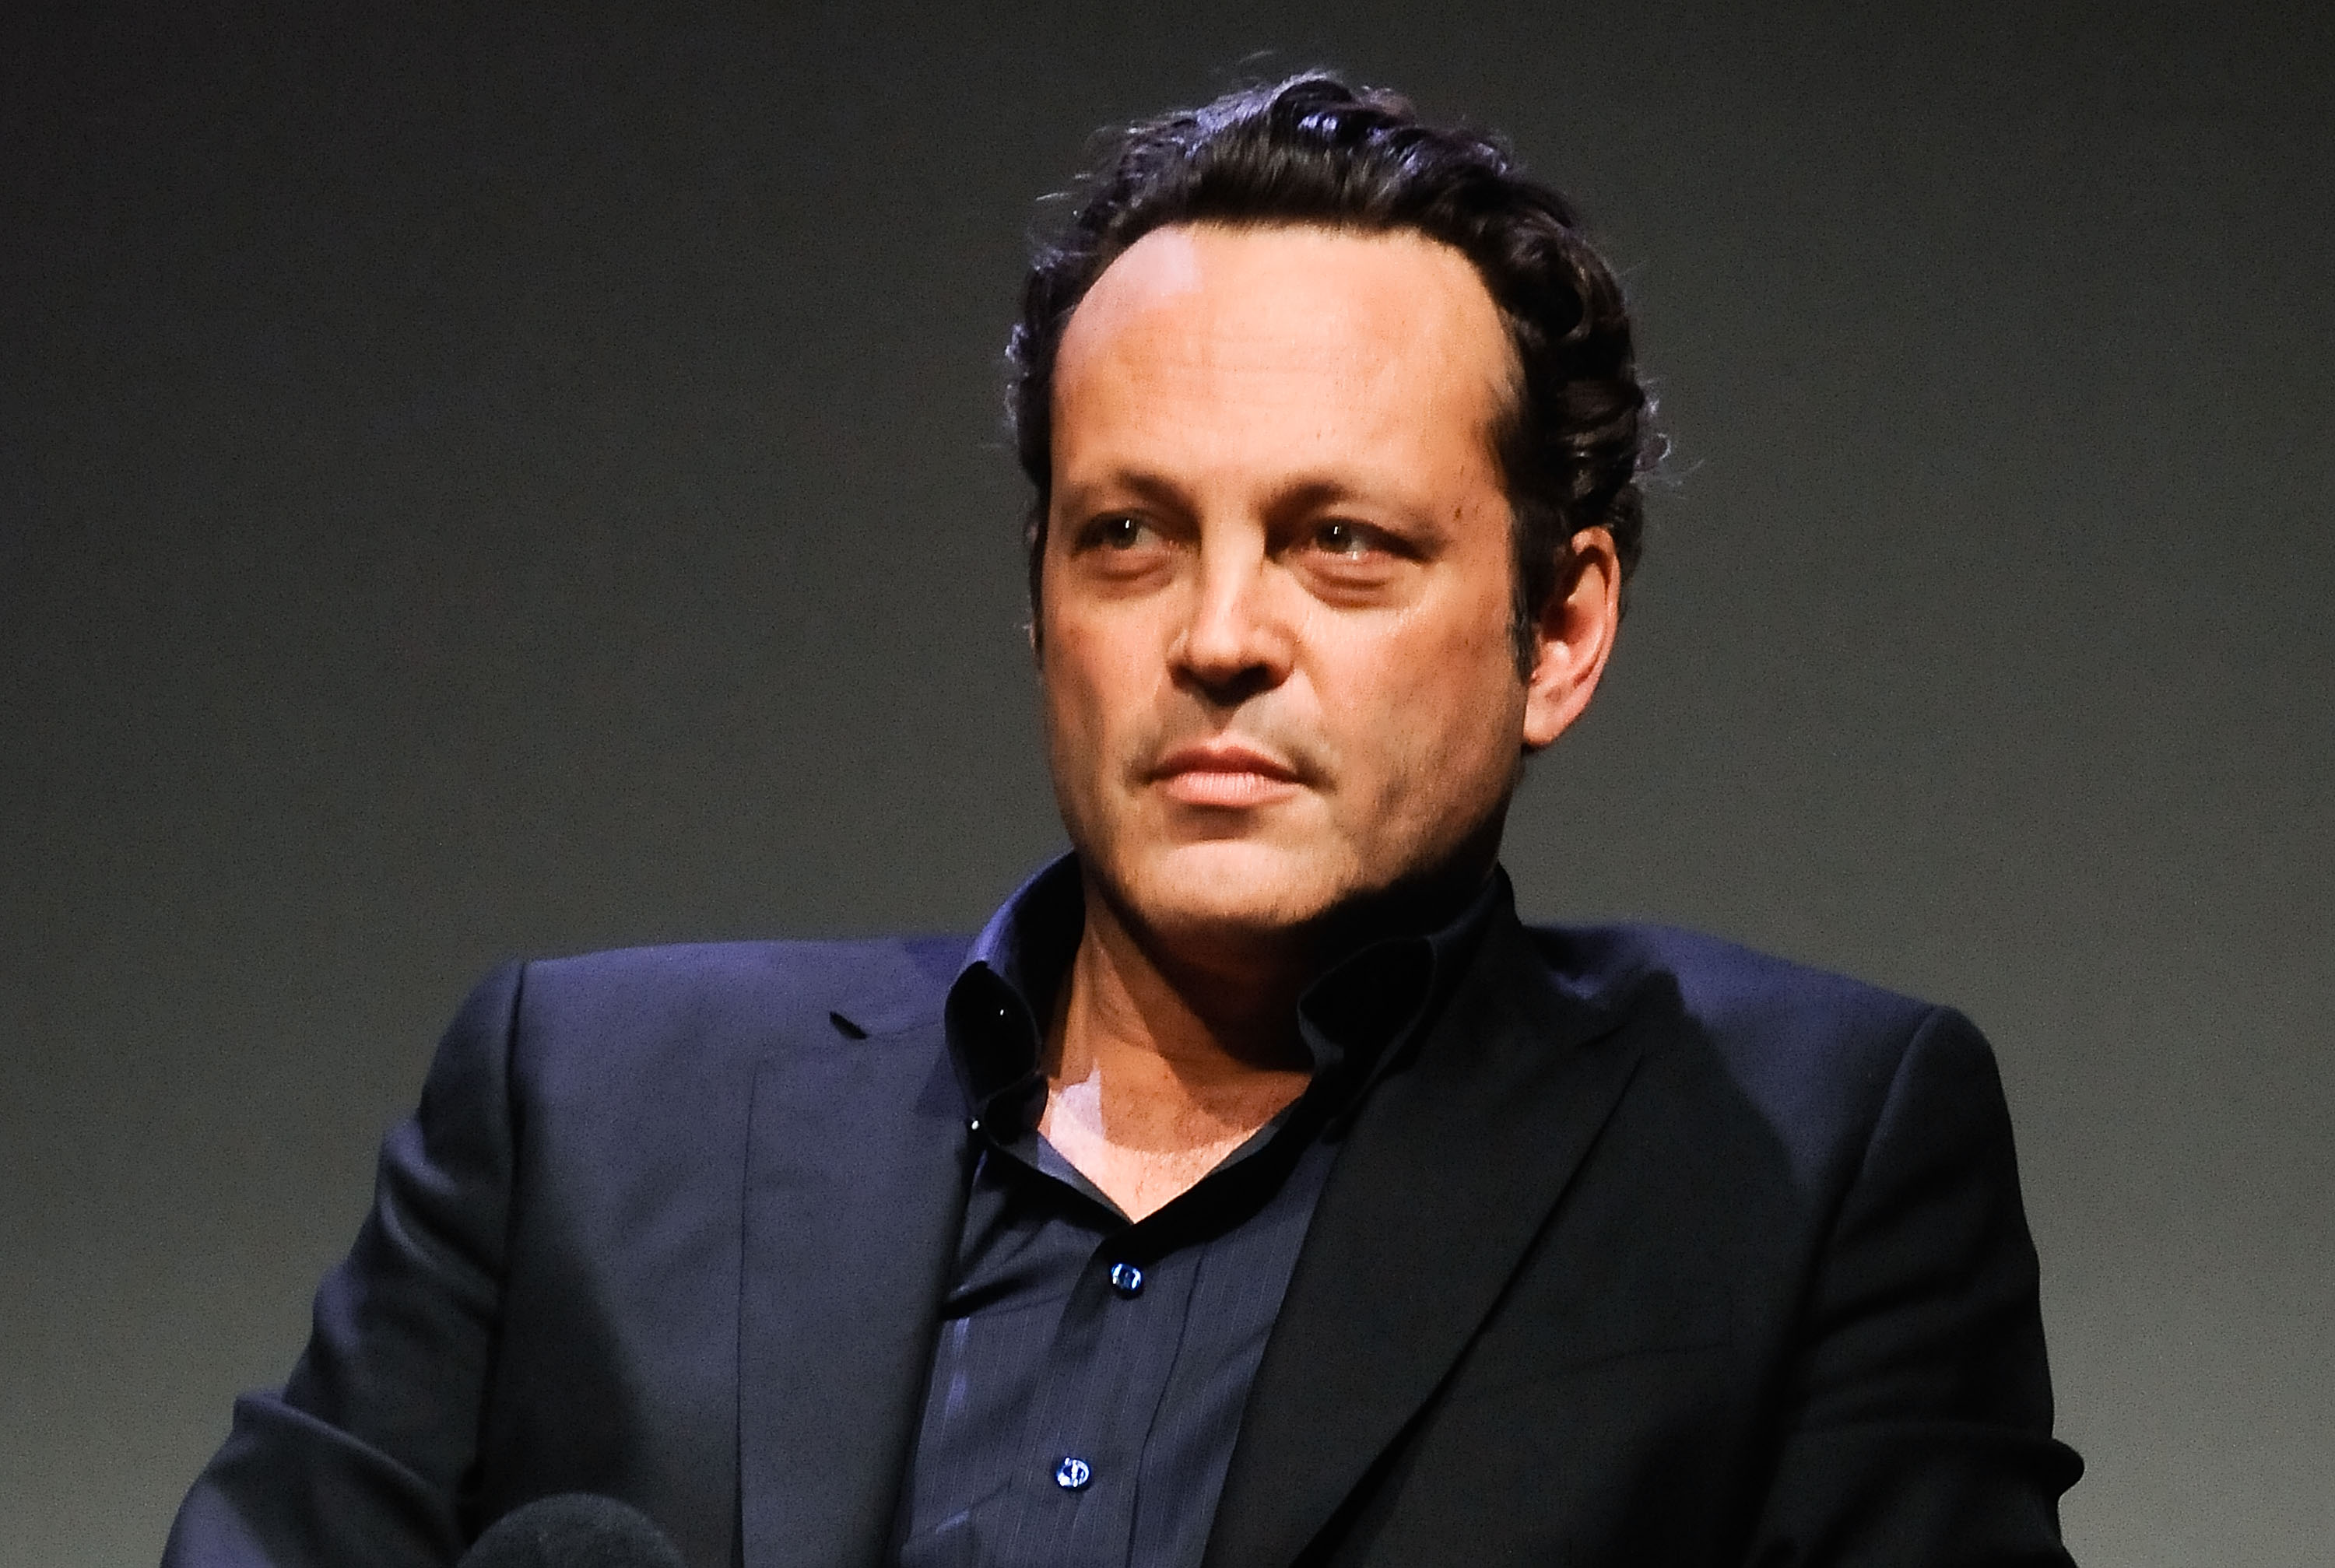 Photo of Rachel McAdams & her friend actor  Vince Vaughn - Cast